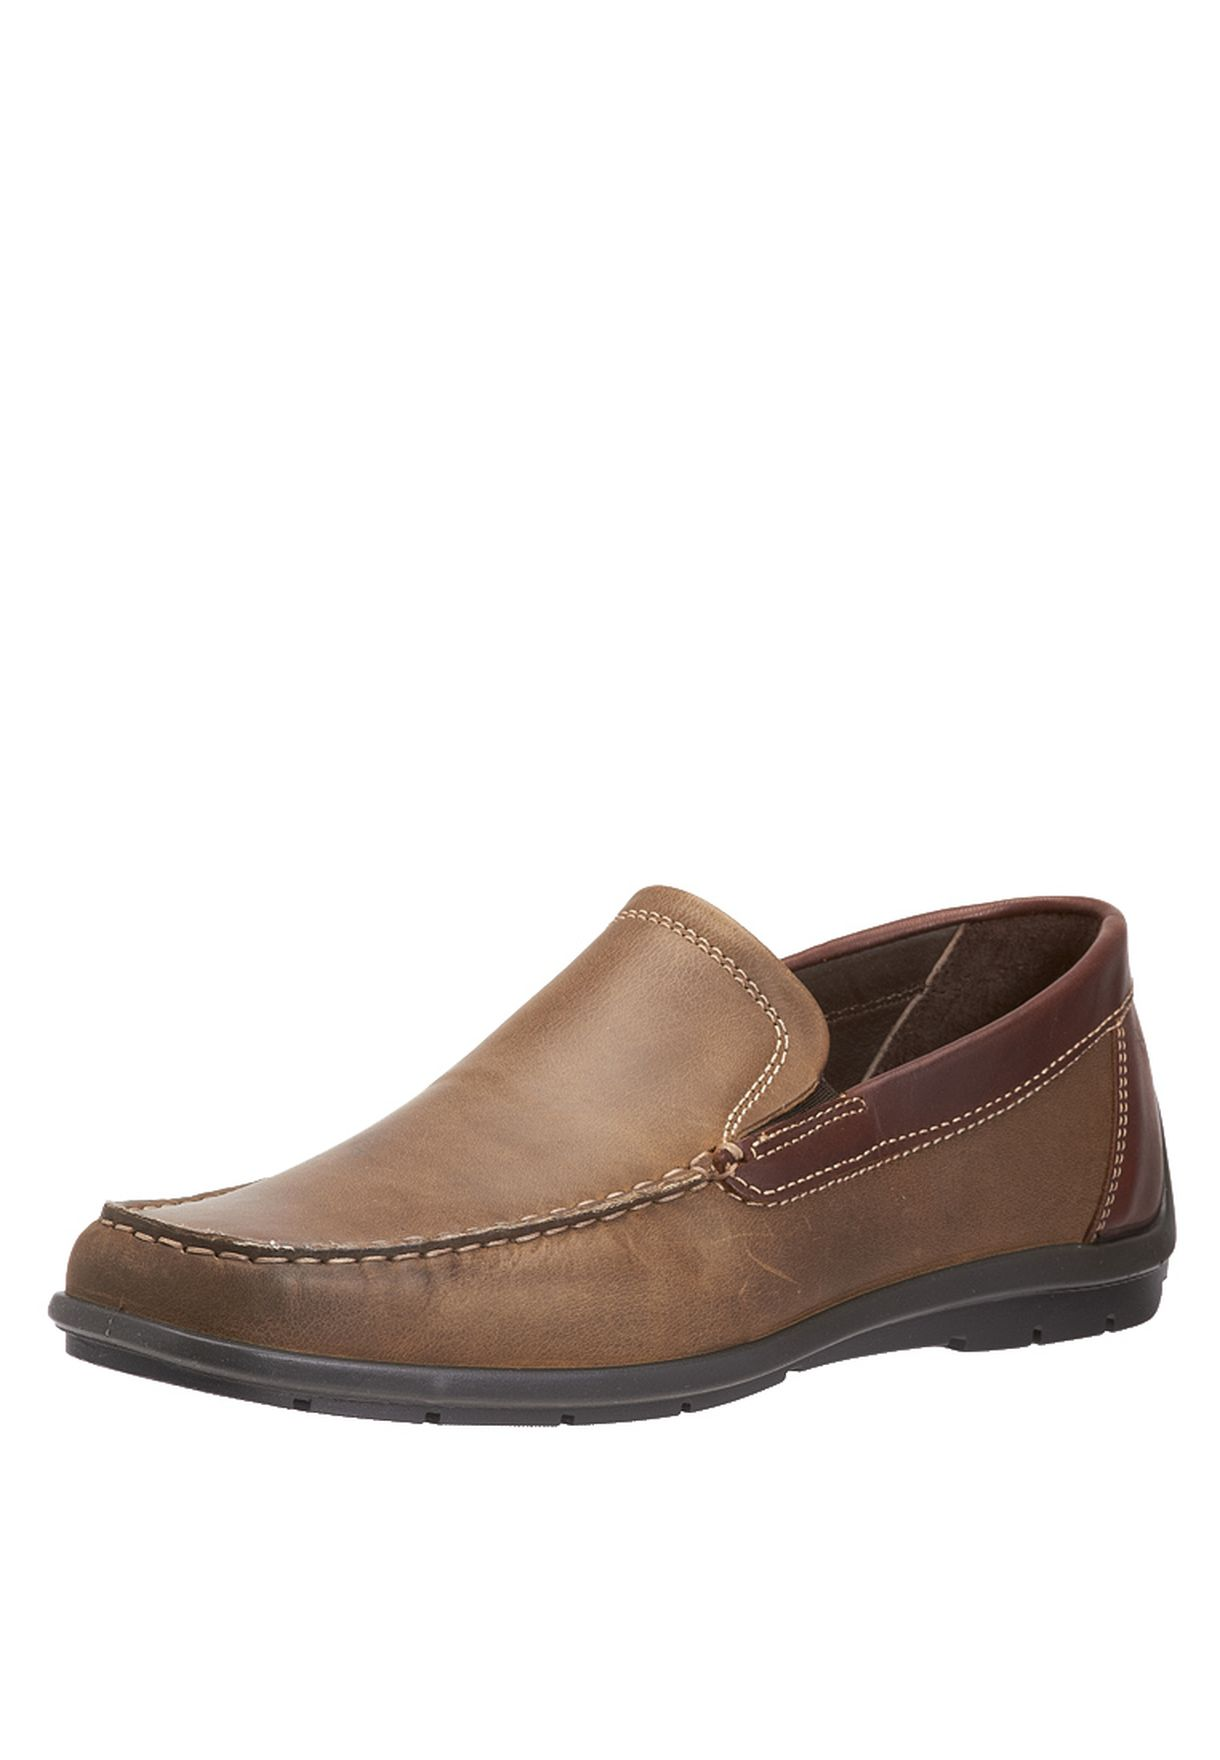 Encommium Dando detalles  Buy Clarks Mens Loafers for Men in Dubai, Abu Dhabi